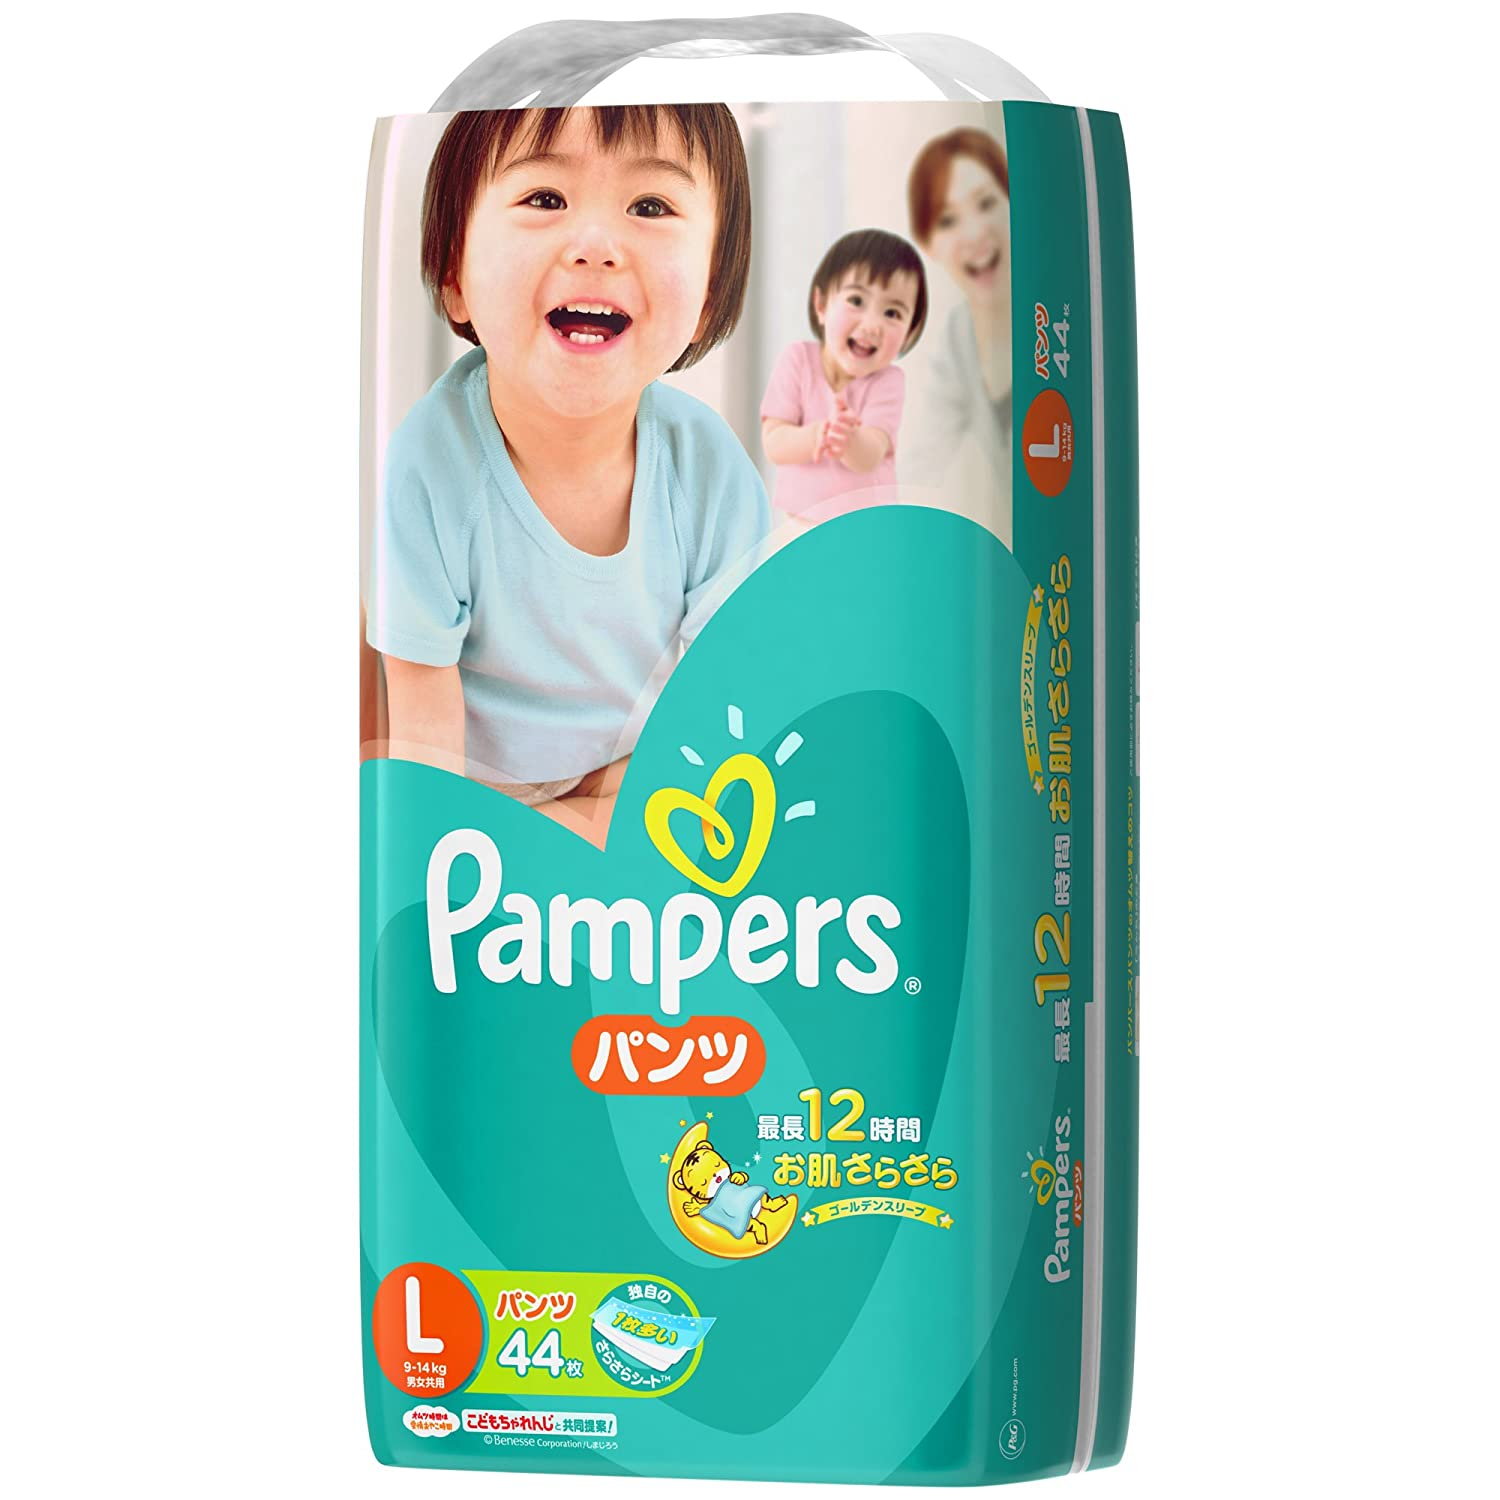 P&g | Diapers | Pampers